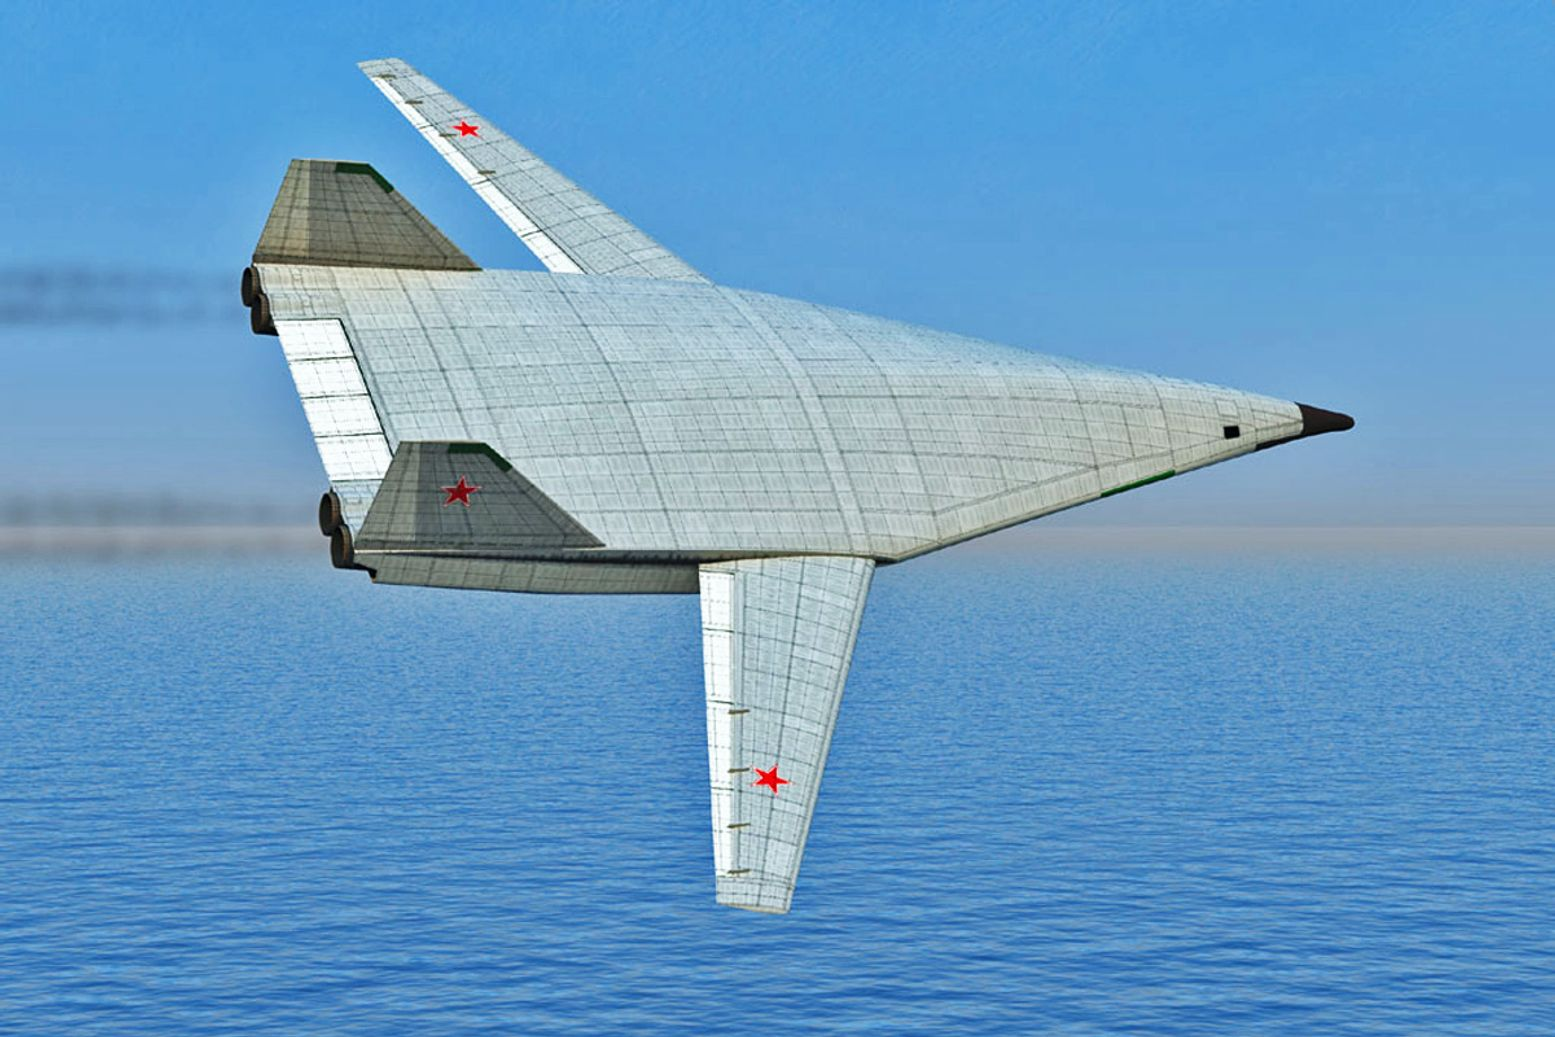 Russia's Mystery Bomber: Why so Little Is Known About PAK-DA Stealth